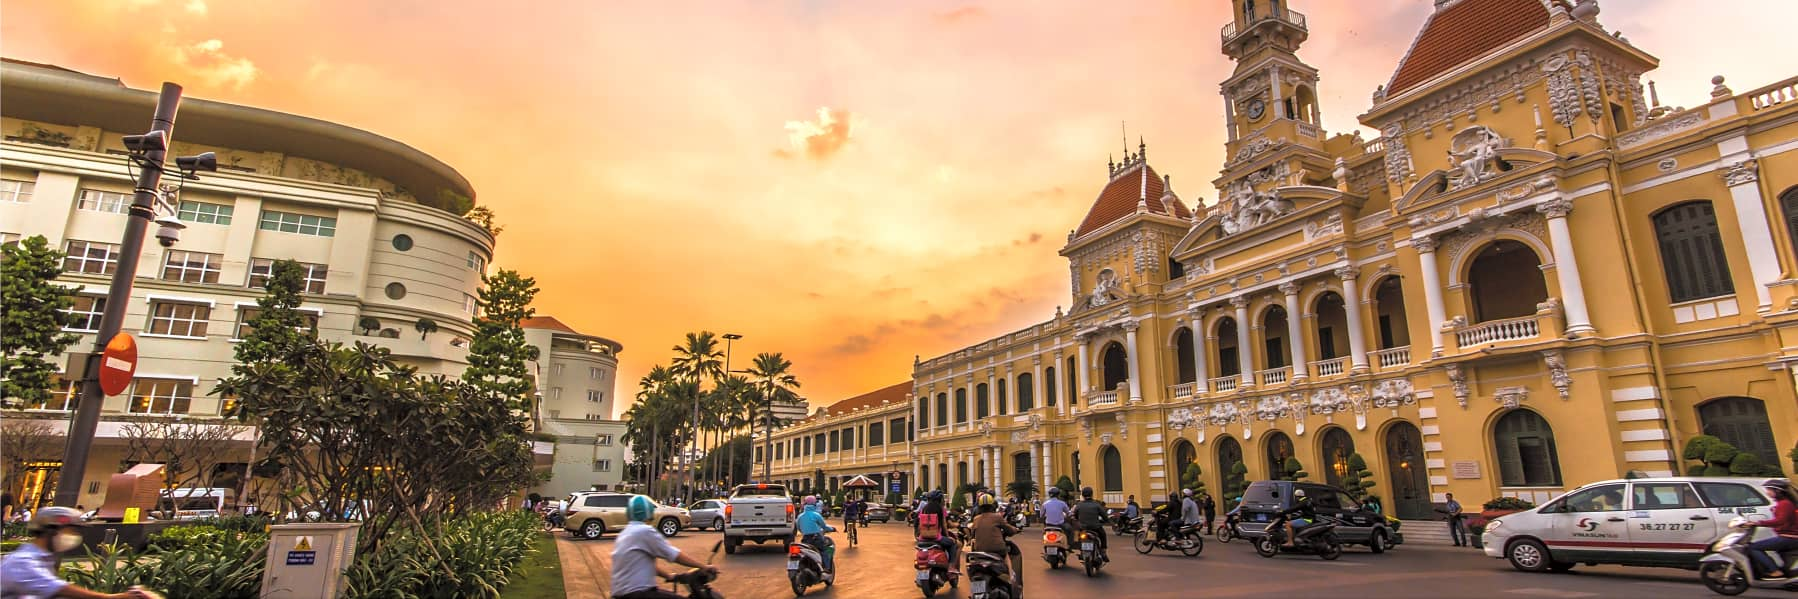 Saigon City Scooter Tour: War Remnants, Reunification Palace and More - Half Day gallery